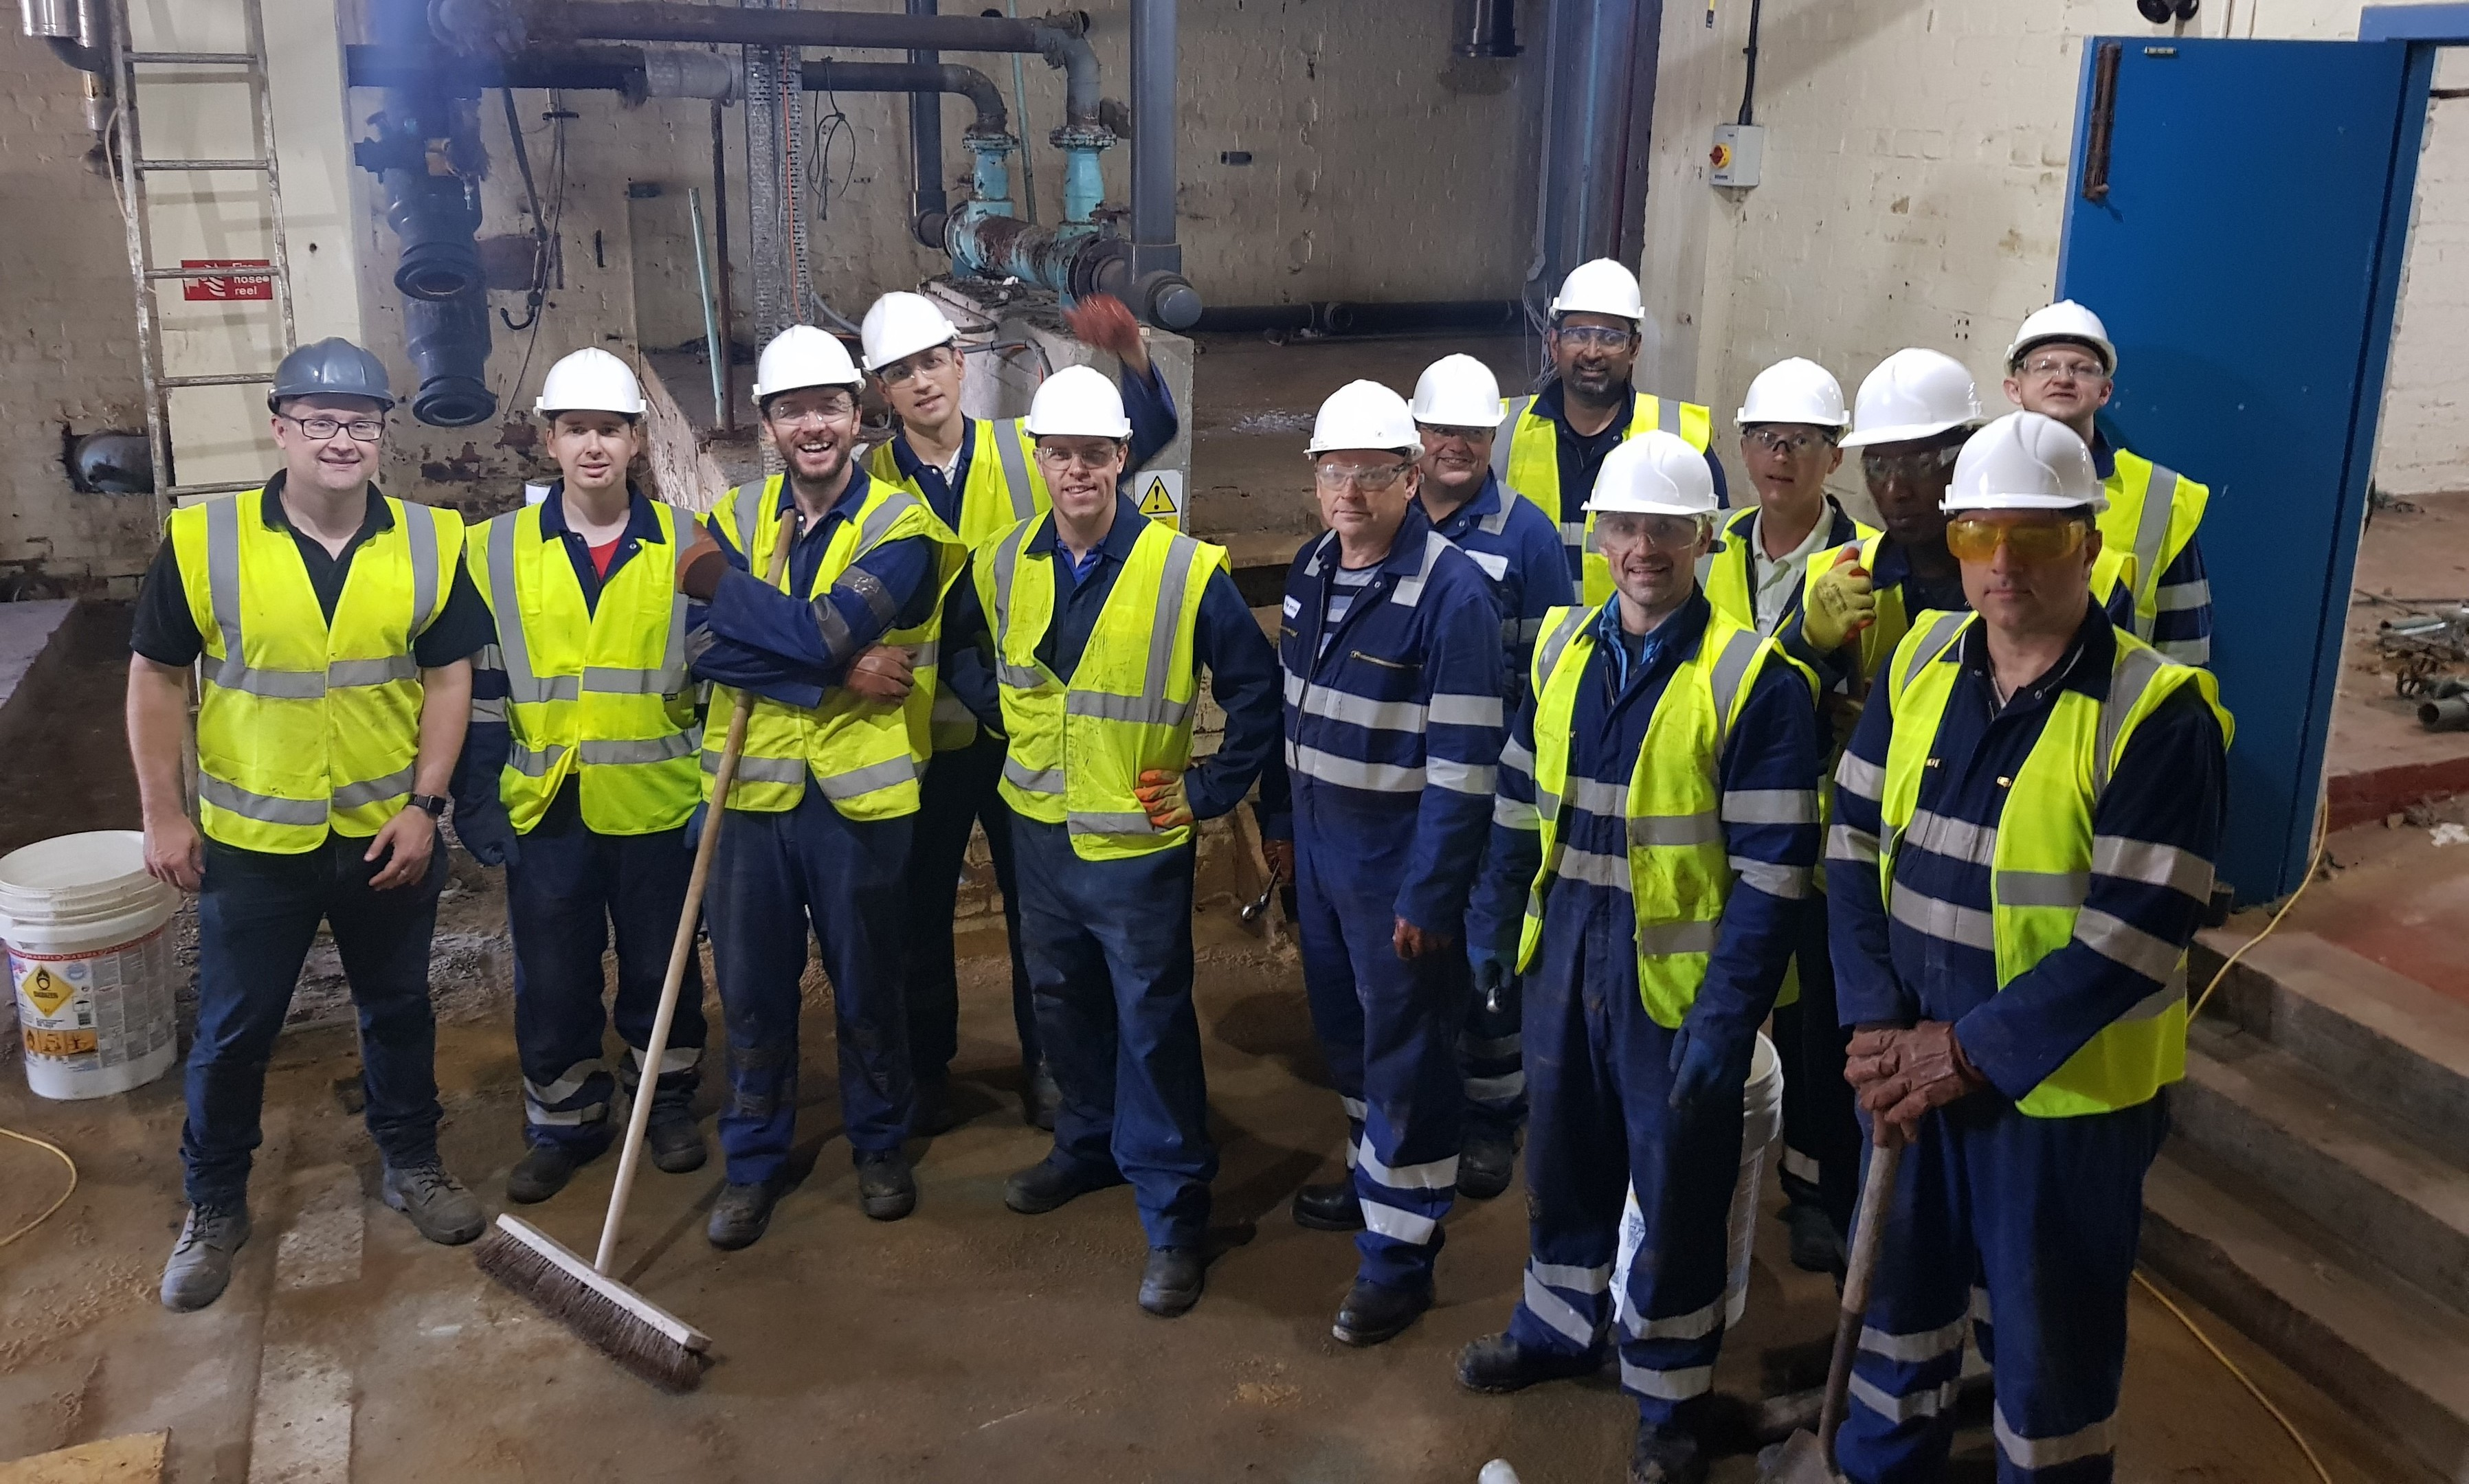 David Paton, left, with the Baker Hughes team.